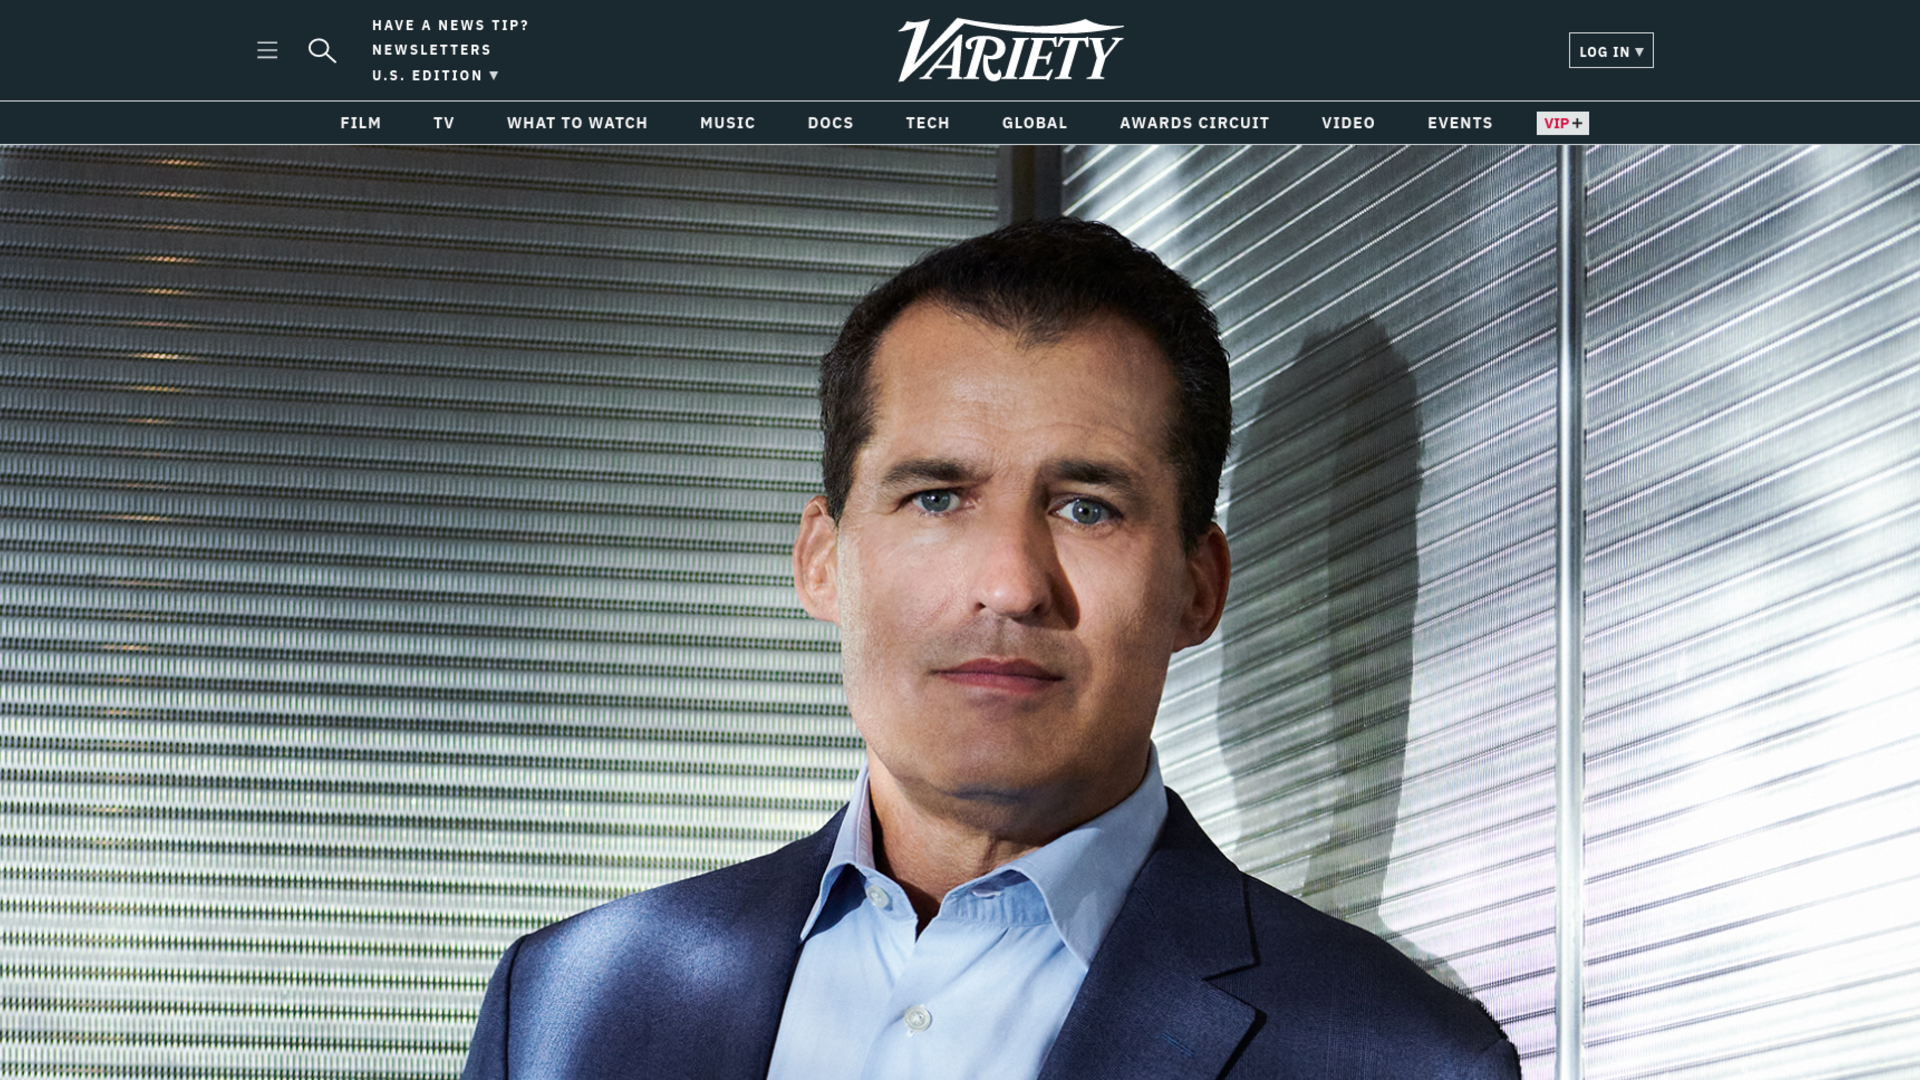 Fairness Rocks News Netflix's Film Chief Scott Stuber Is Shaking Up Hollywood: 'The Movie Business Is in a Revolution'